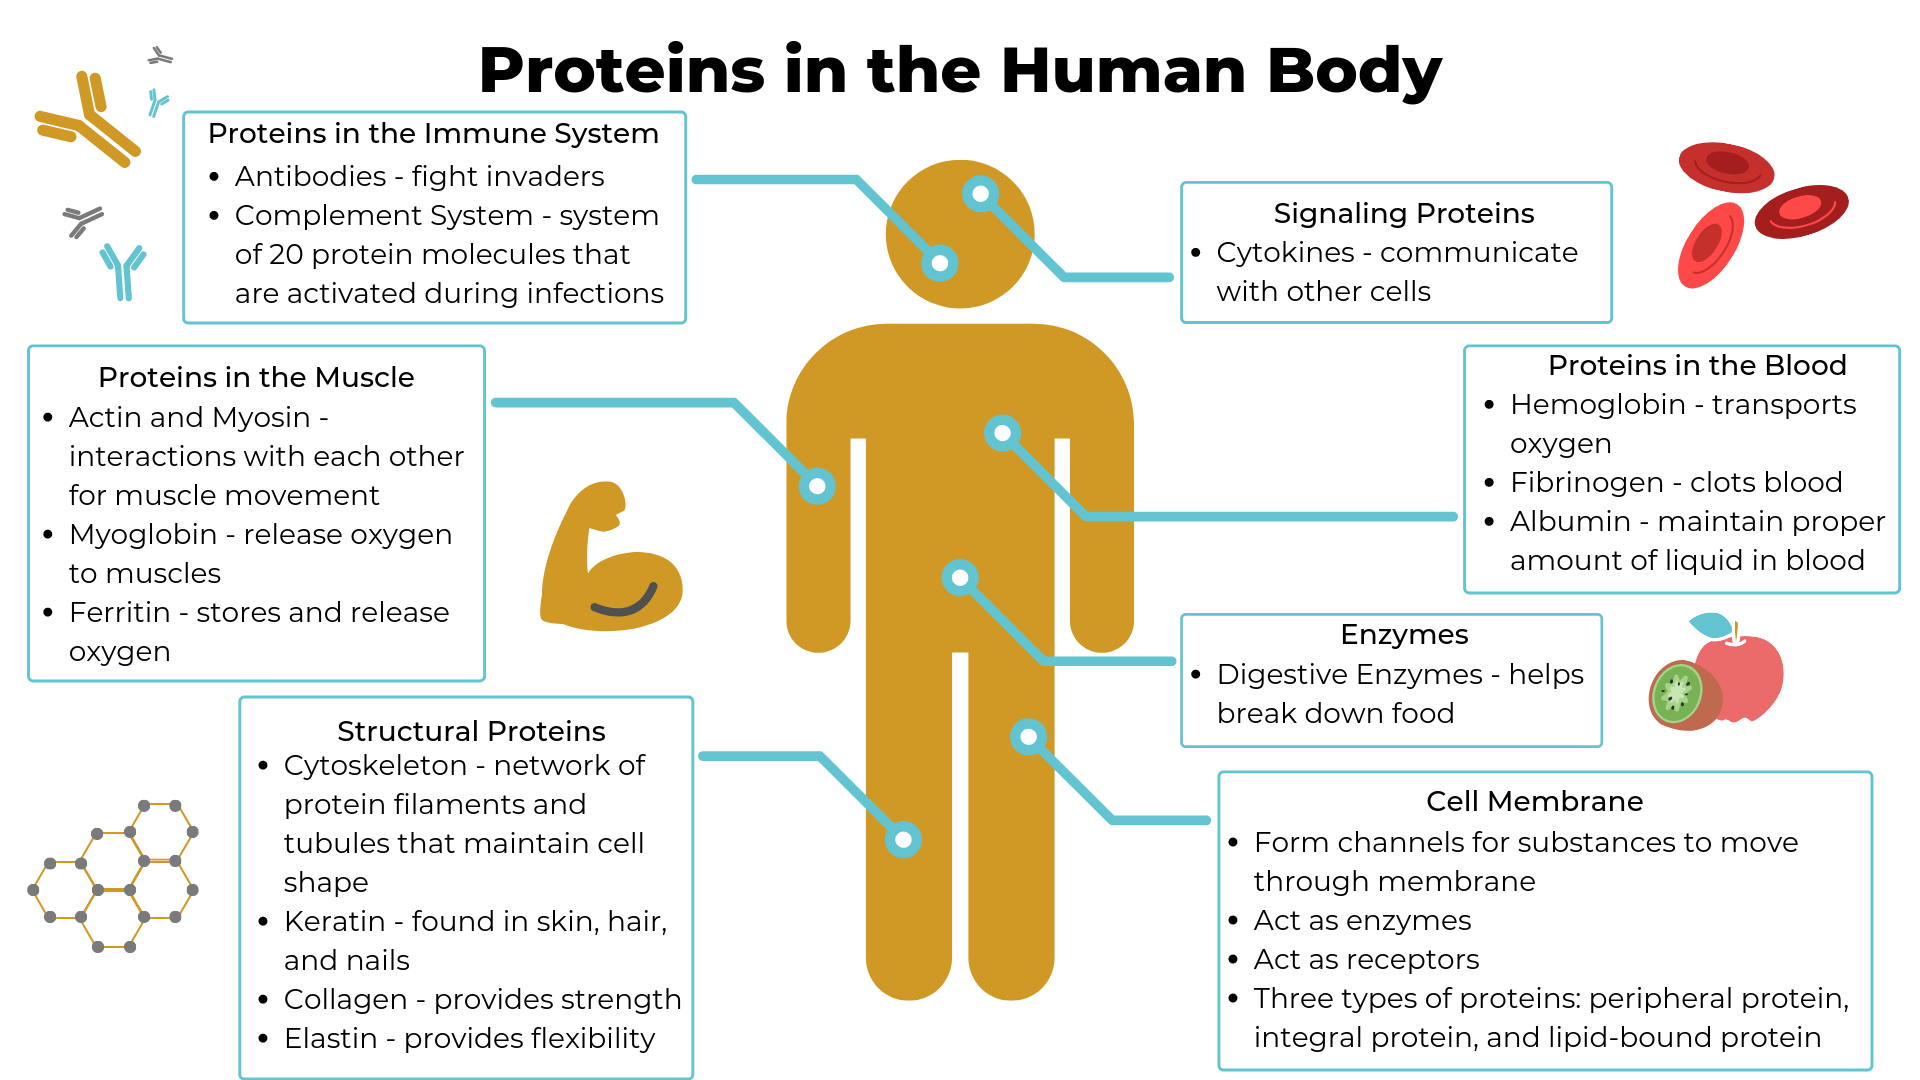 Infographic on the important proteins found in the human body